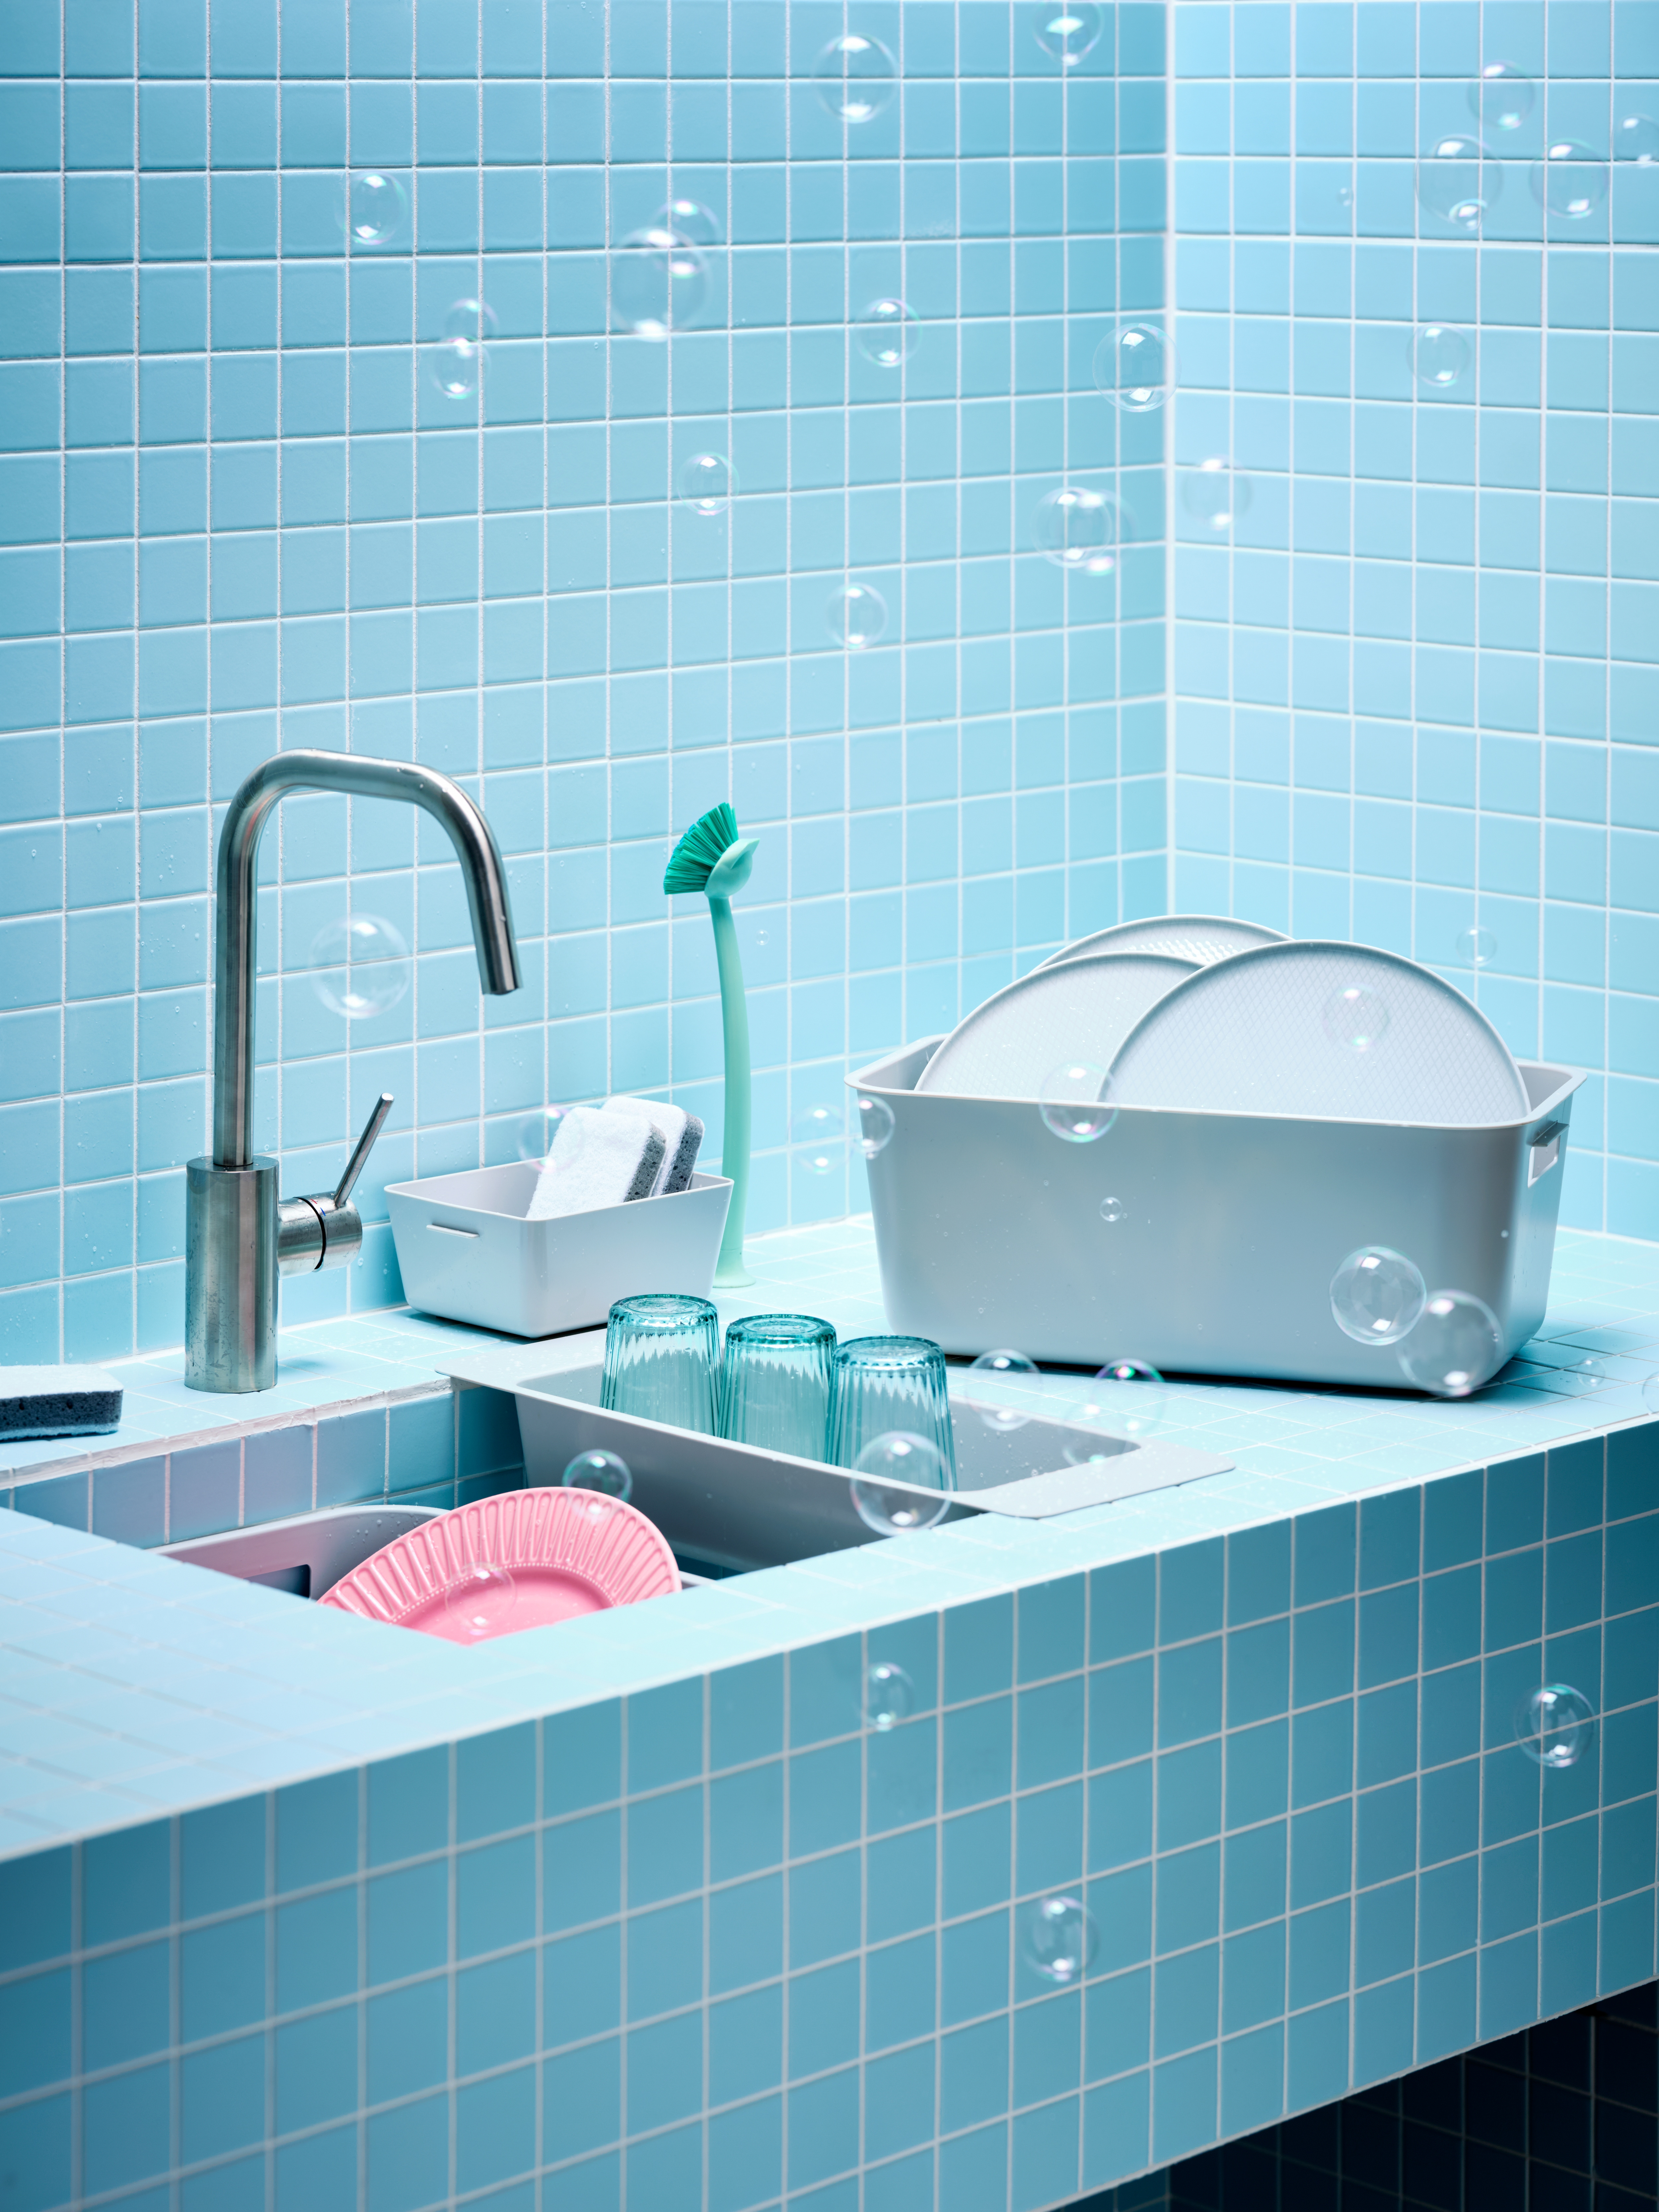 Blue-tiled kitchen worktop with ongoing washing-up with GRUNDVATTNET accessories, pastel tableware and airborne soap bubbles.